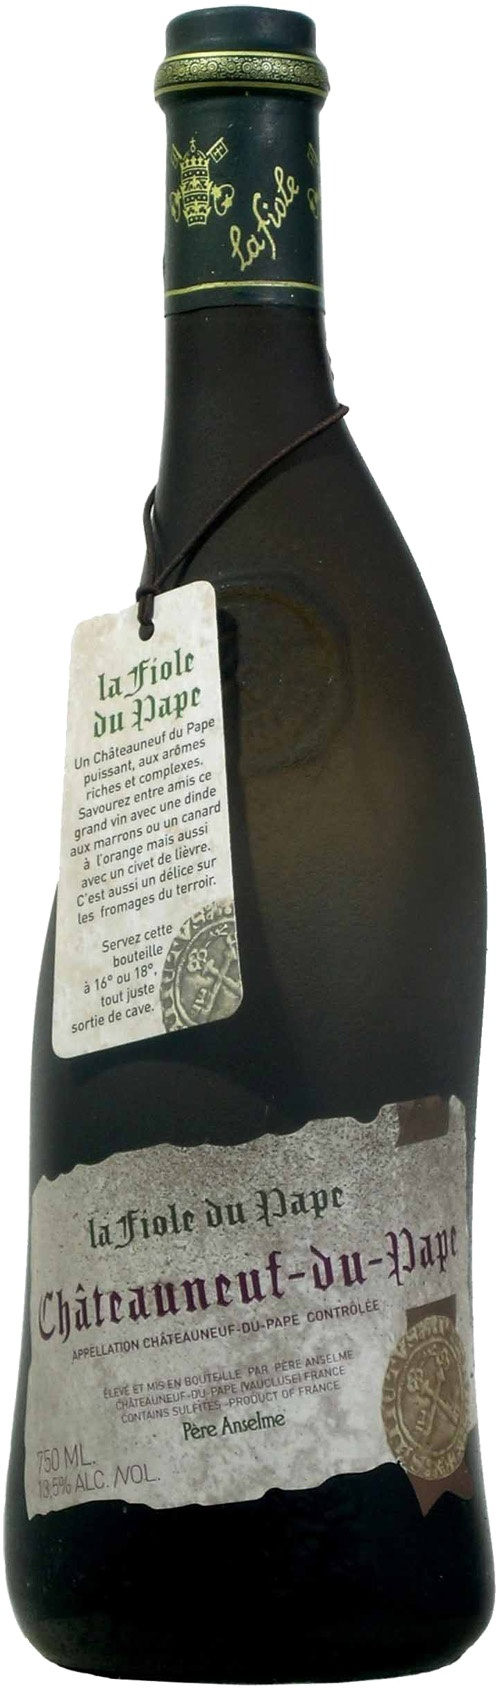 My utmost most favorite wine ever... La Fiole du Pape Châteauneuf-du-Pape AOC from Rhone Valley, France.